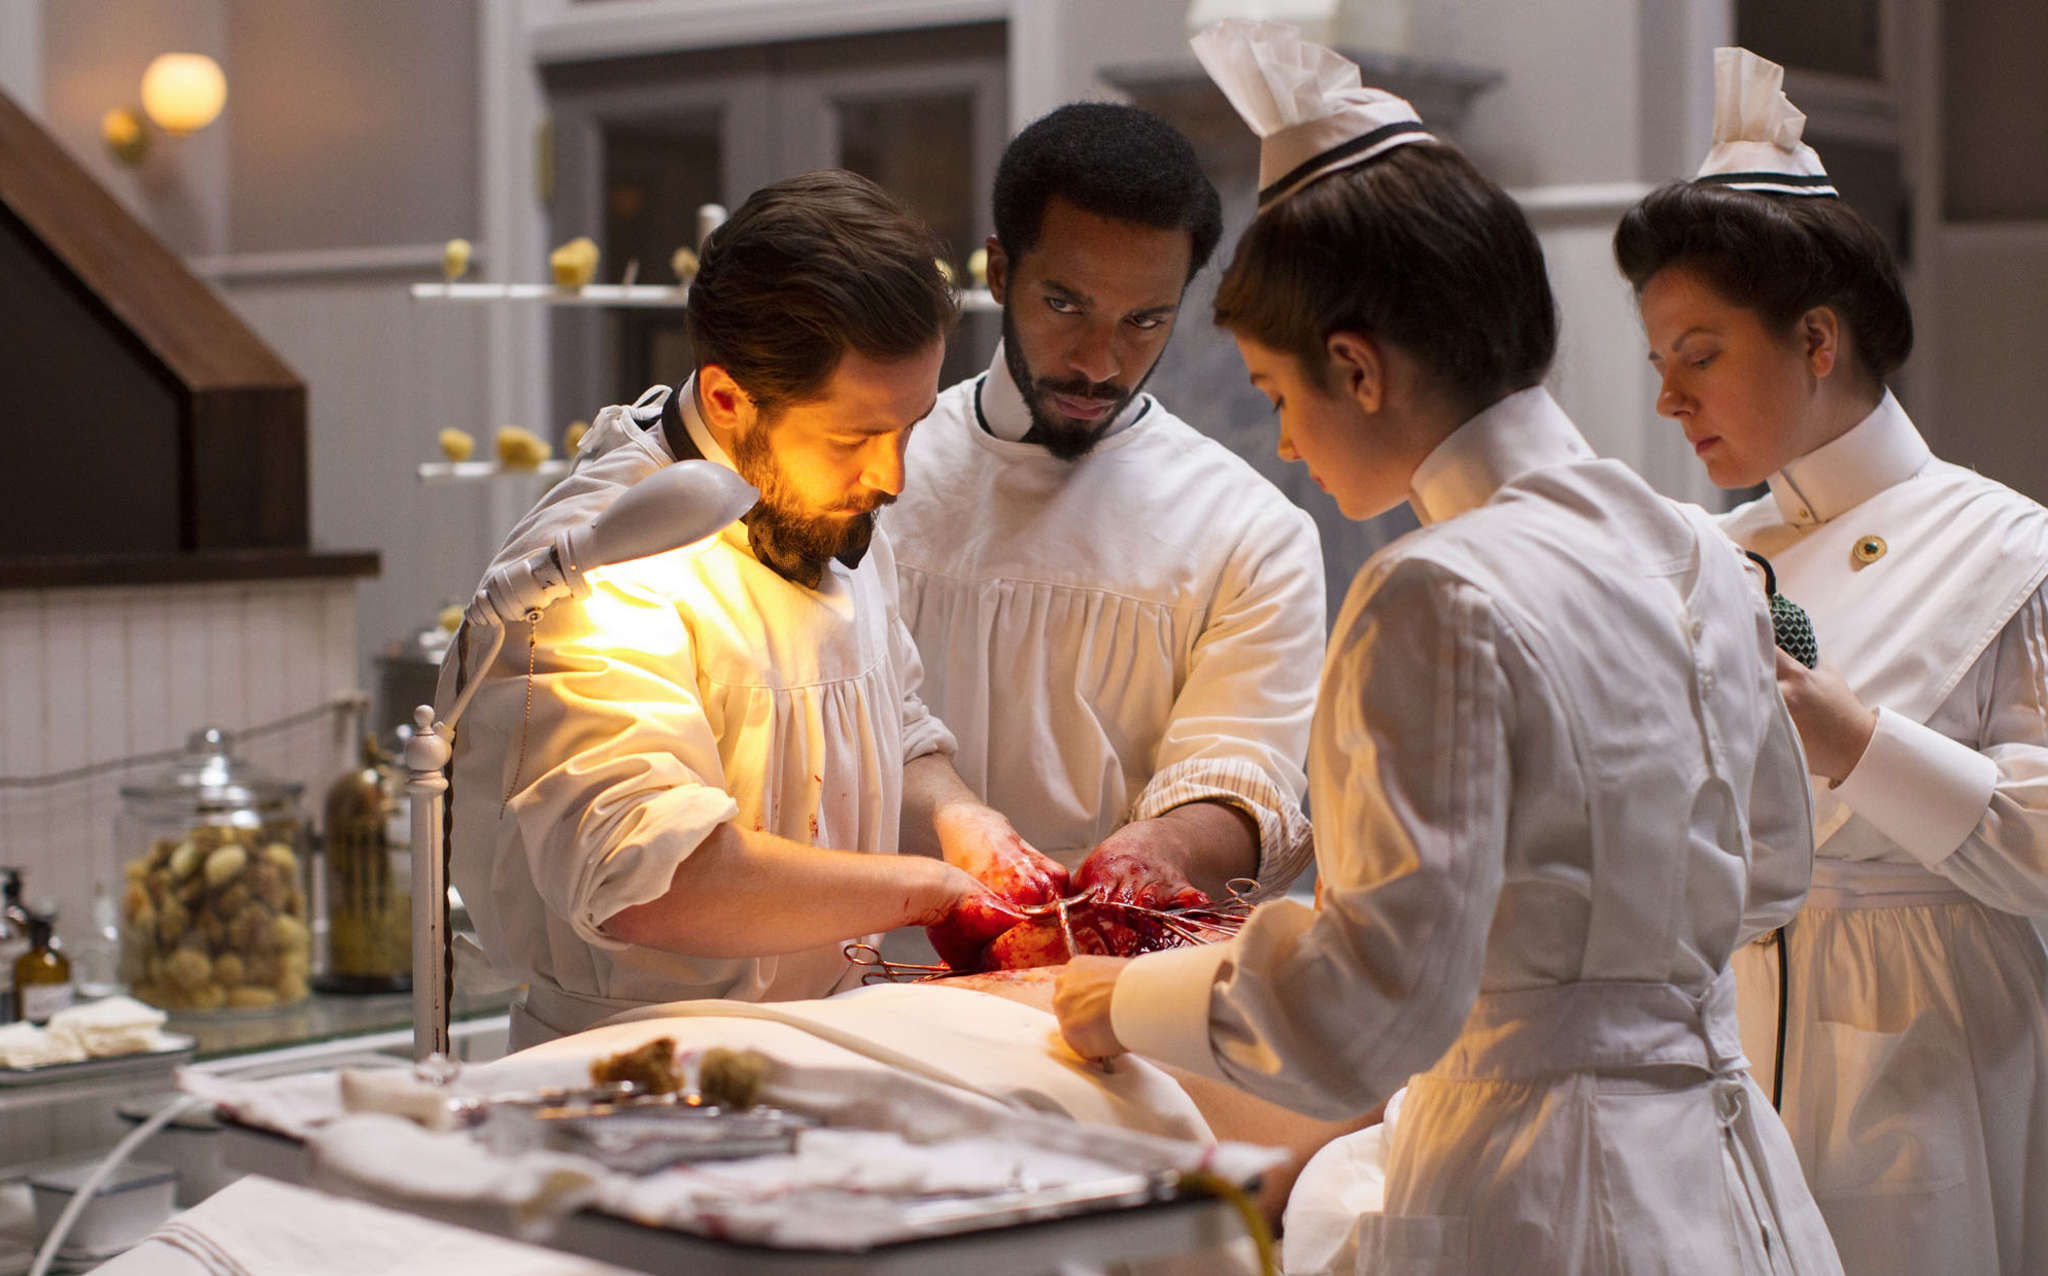 "Cutting-edge, bleeding-edge - the medicine practiced in ""The Knick"" was advanced for its time, but to us frighteningly primitive, as ours will likely appear to those who follow."